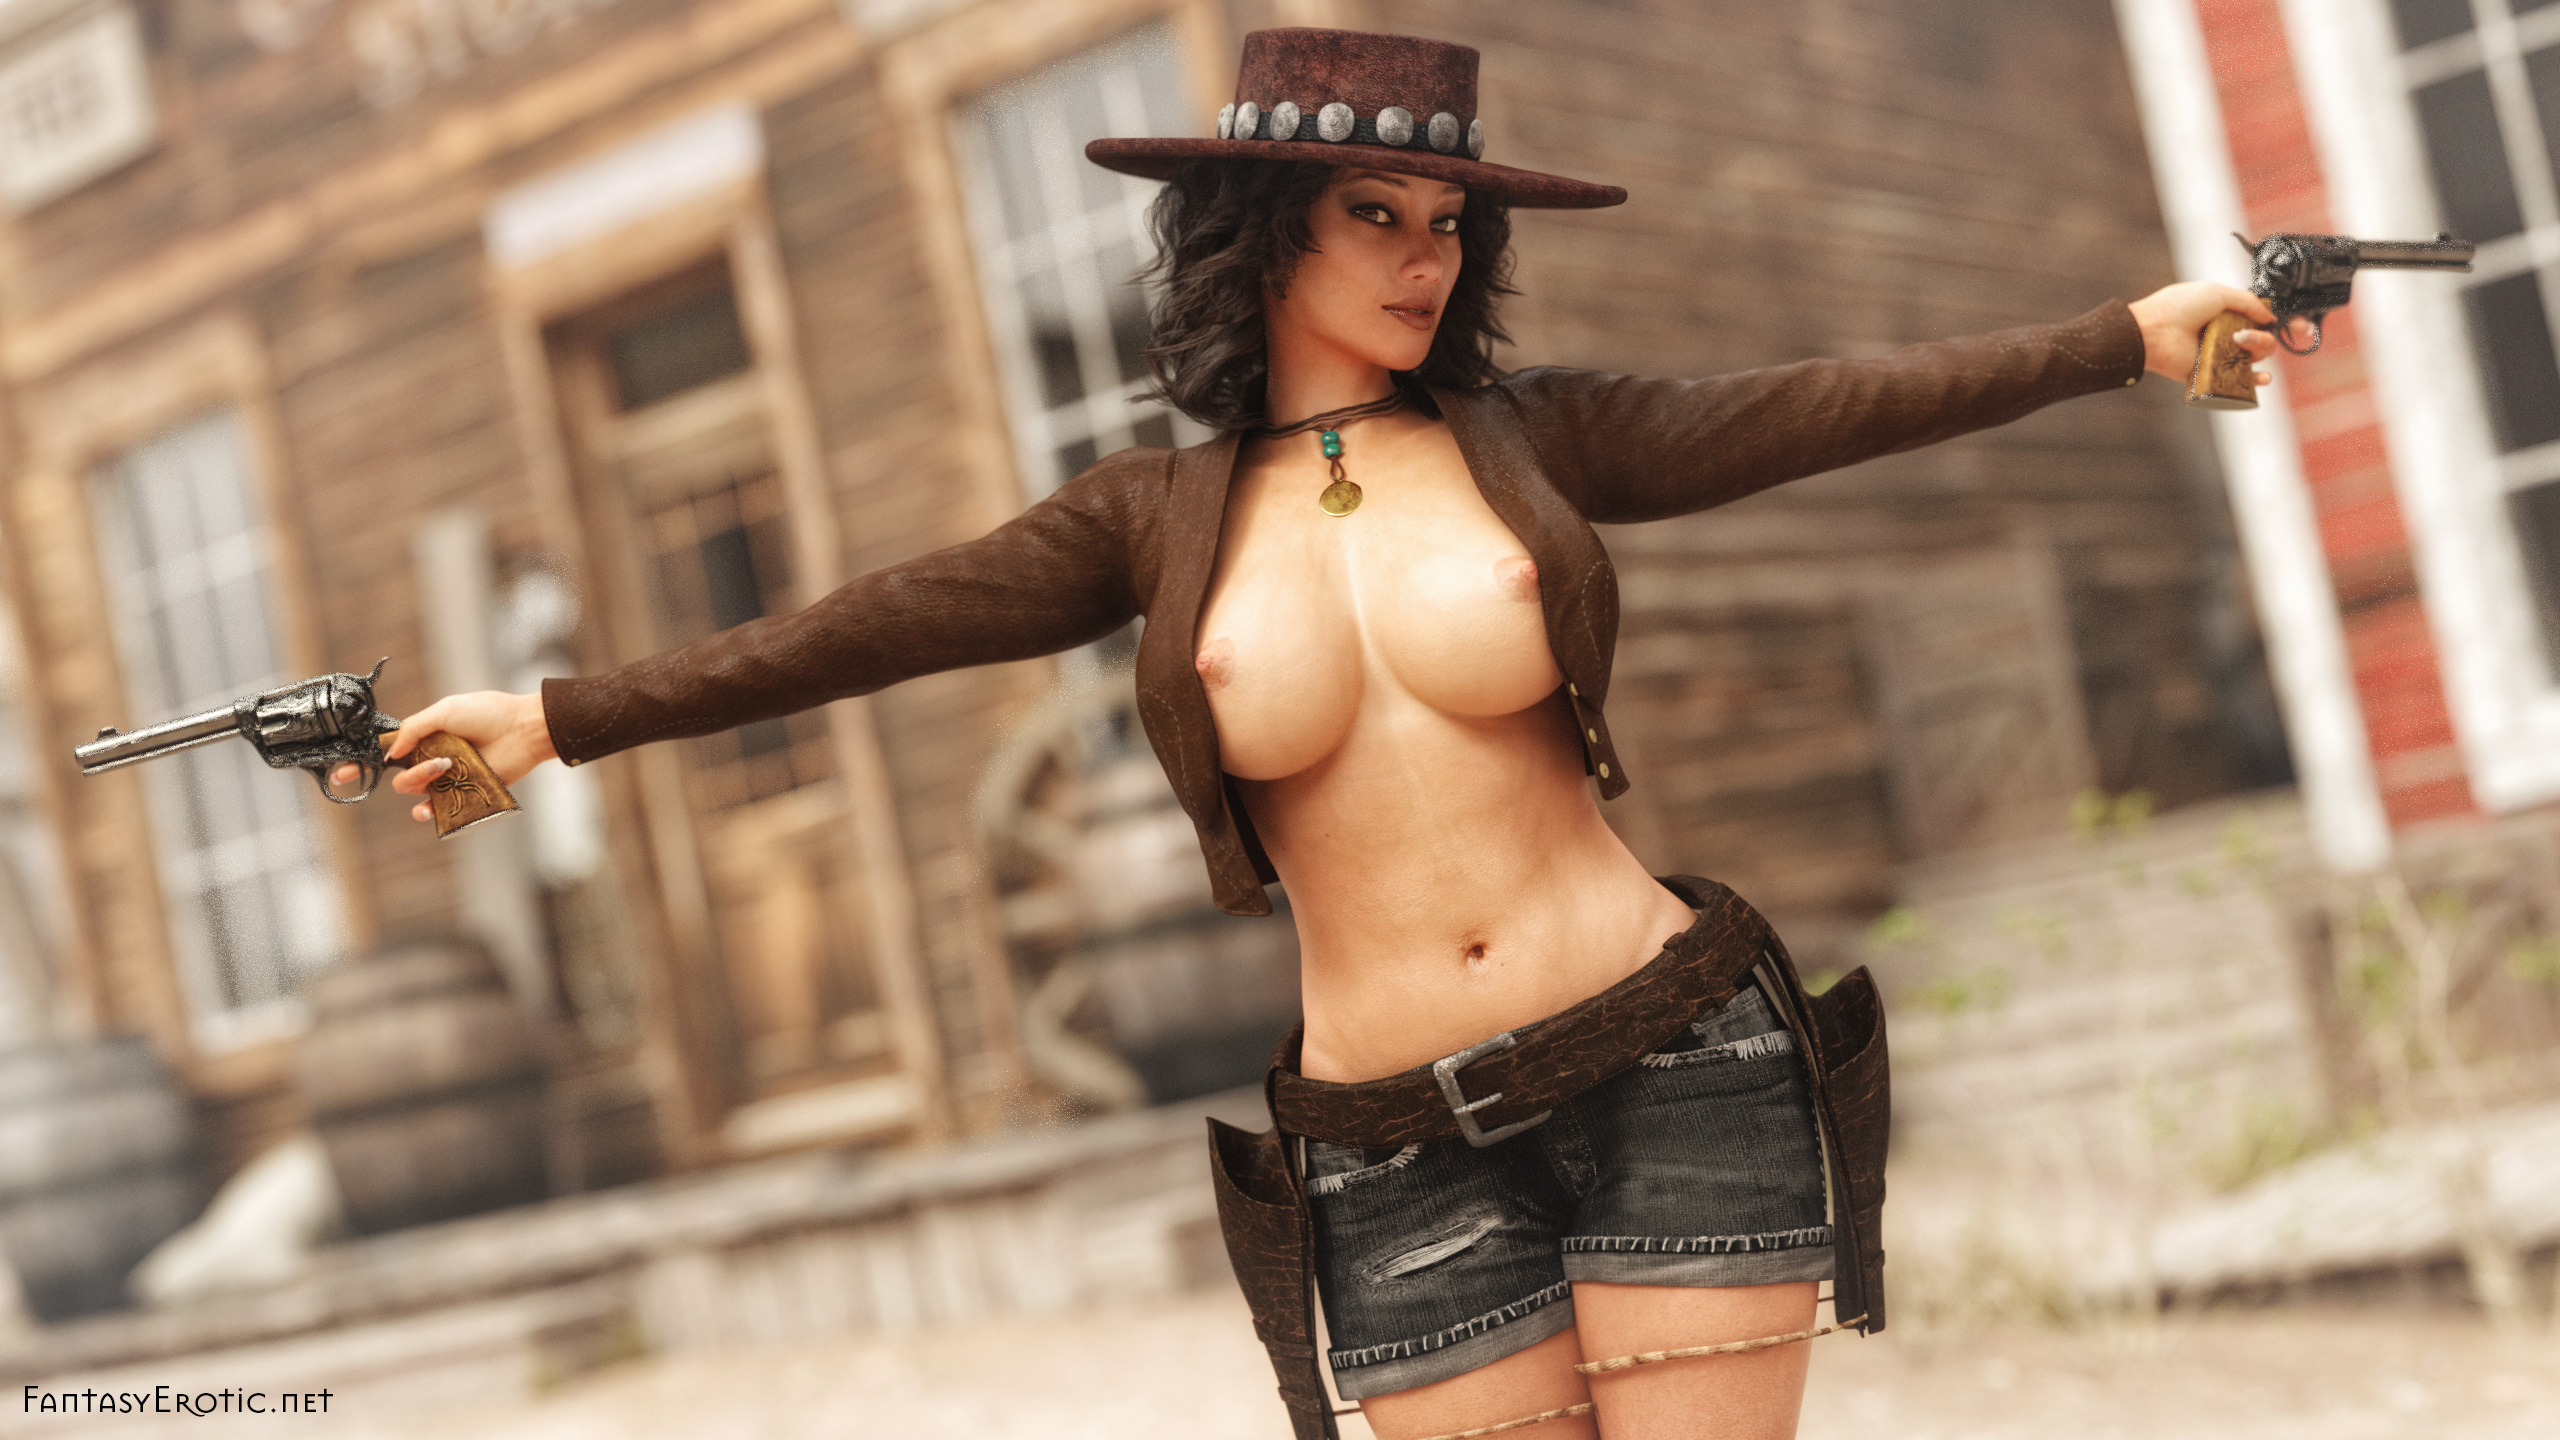 Wallpaper of a busty bountyhunter